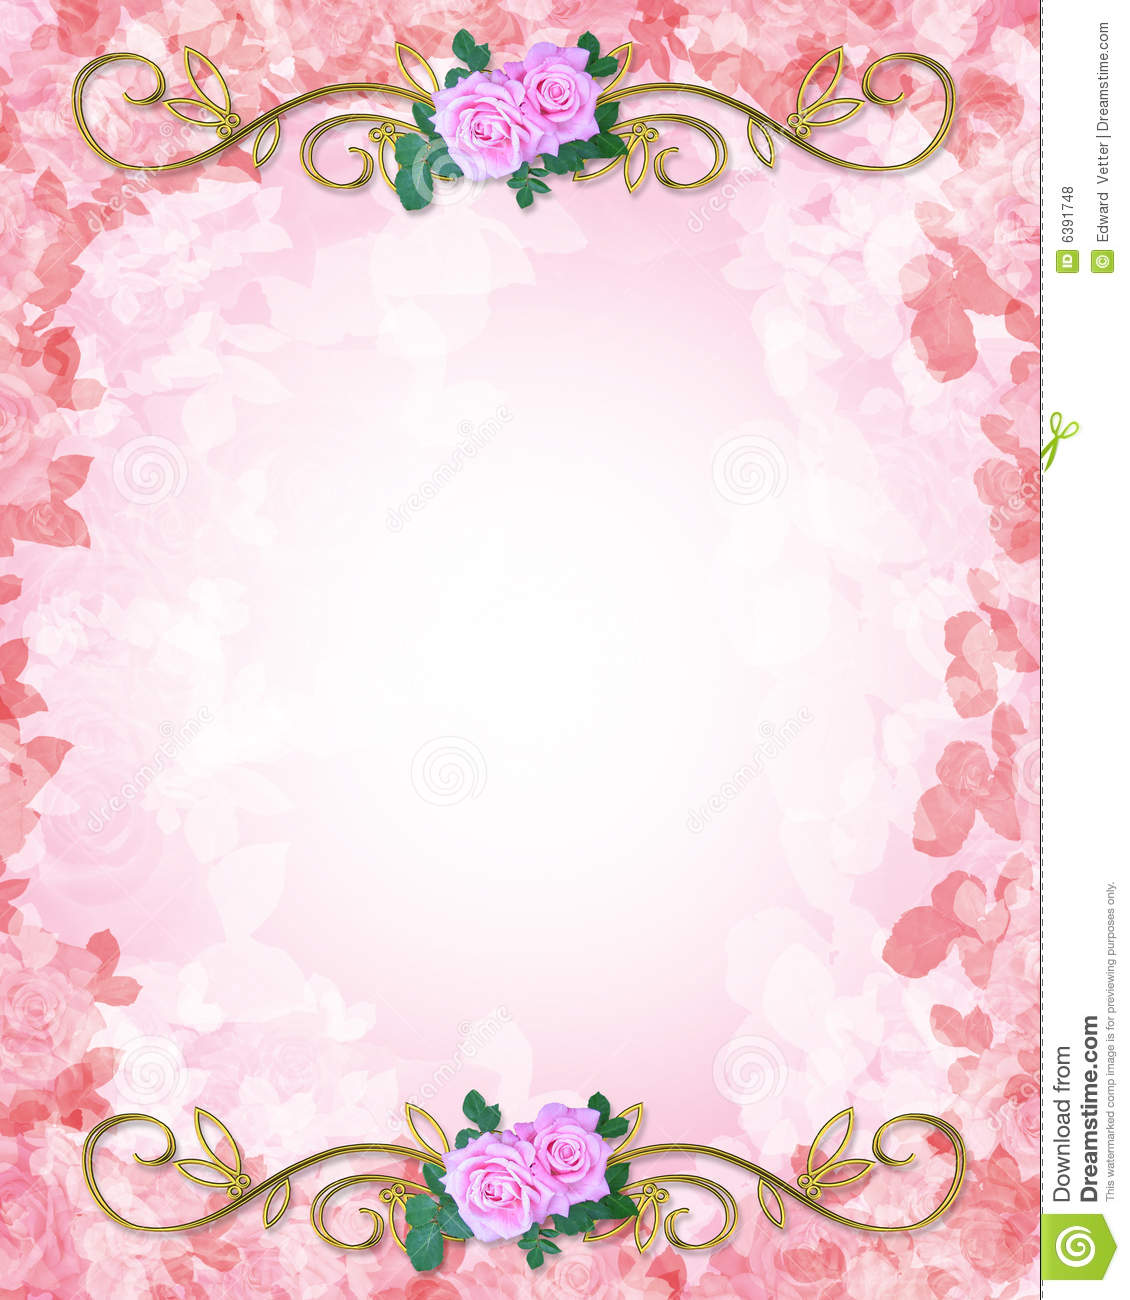 Wedding PNG Psd Free Download Transparent Wedding Psd.